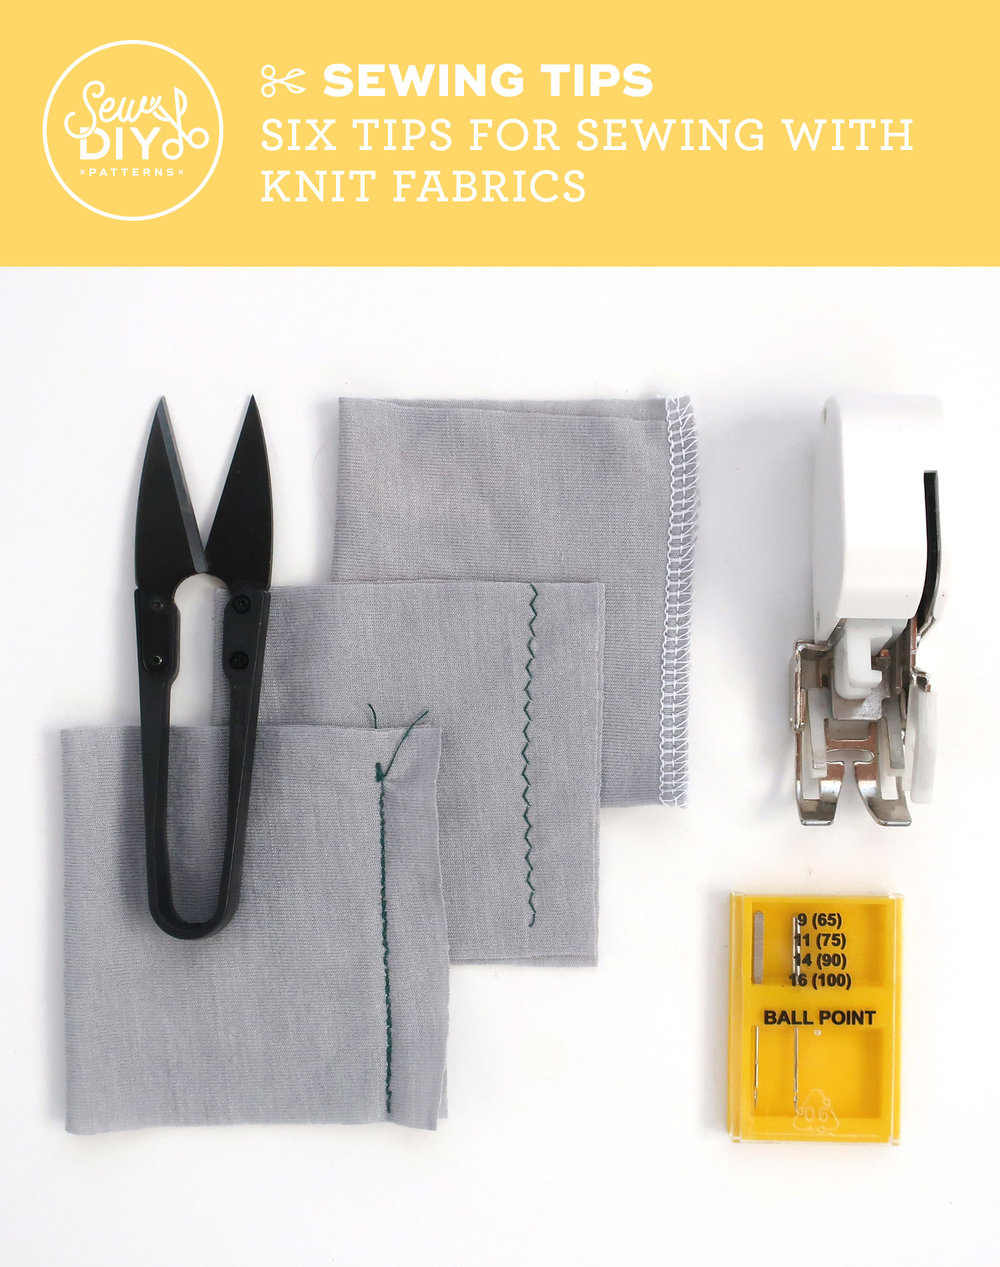 Six Tips for Sewing with Knit Fabric - Video from Sew DIY